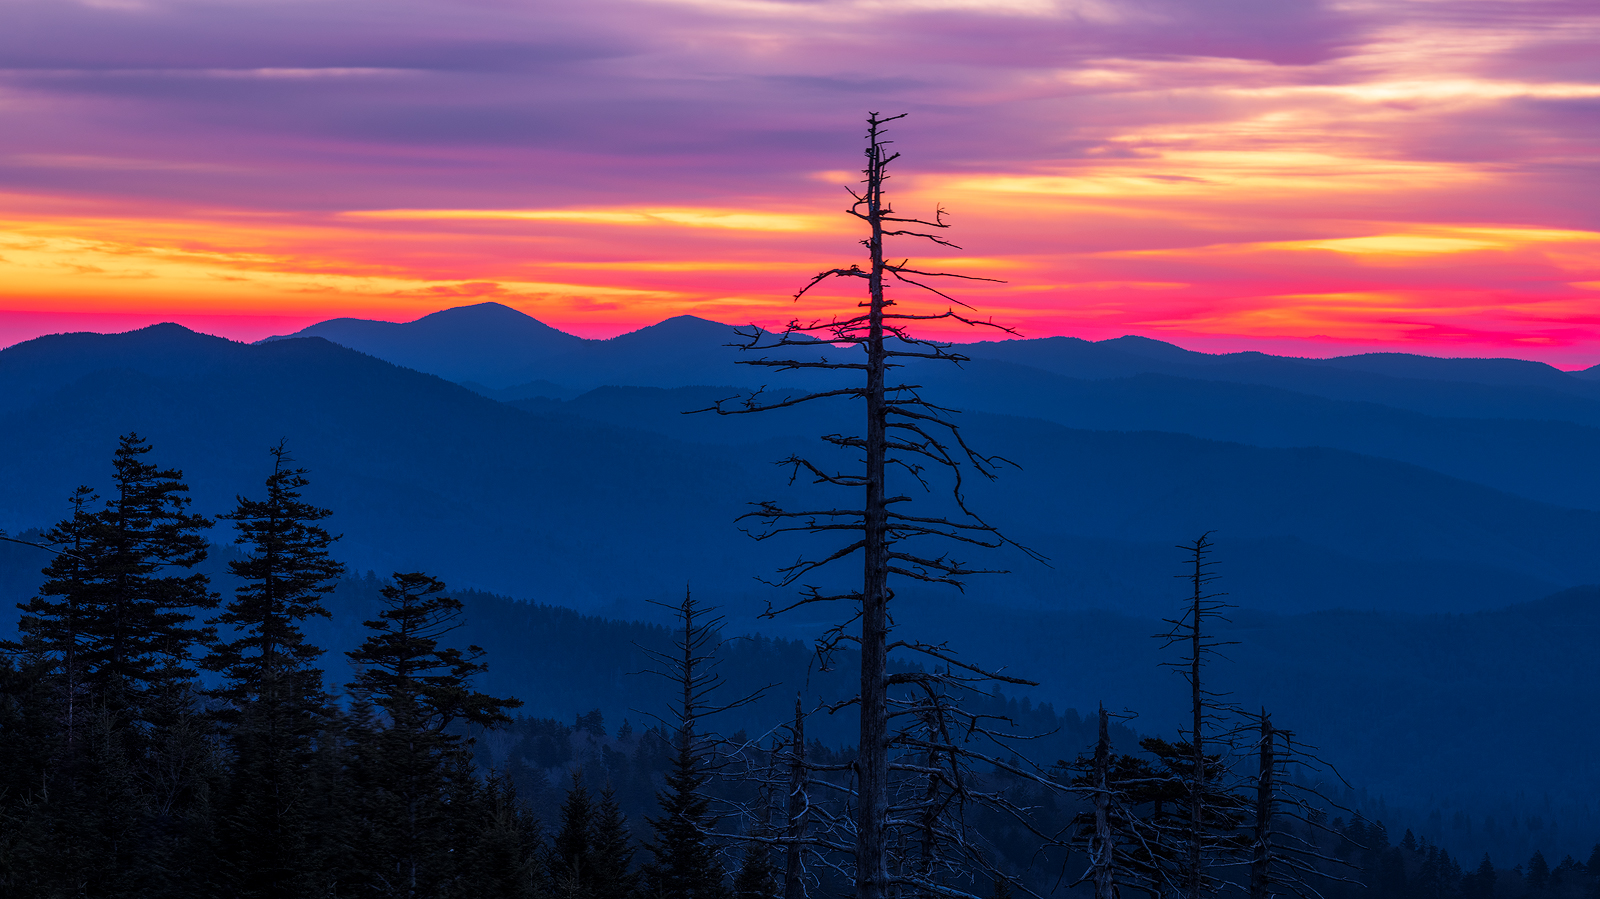 Sunrise looking east from Clingmans Dome.